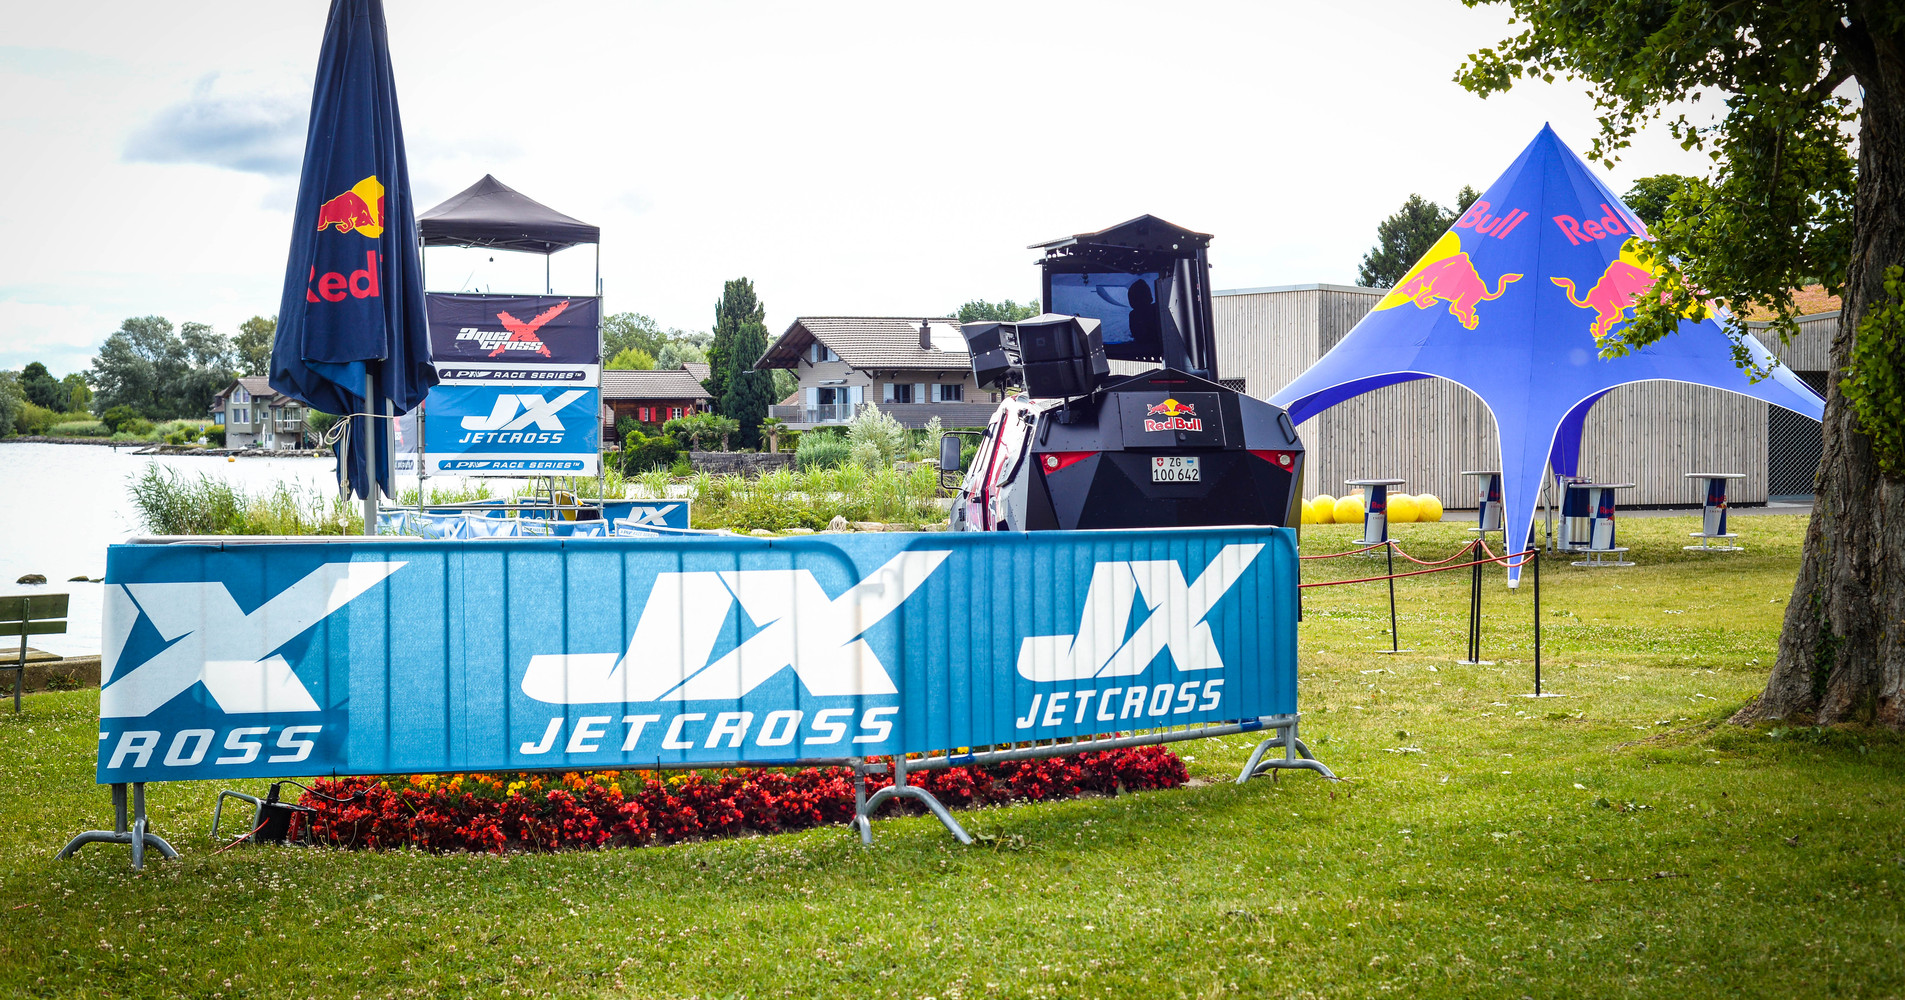 Red Bull will be the official energy drink of the Jetcross Grand Prix of Belgium